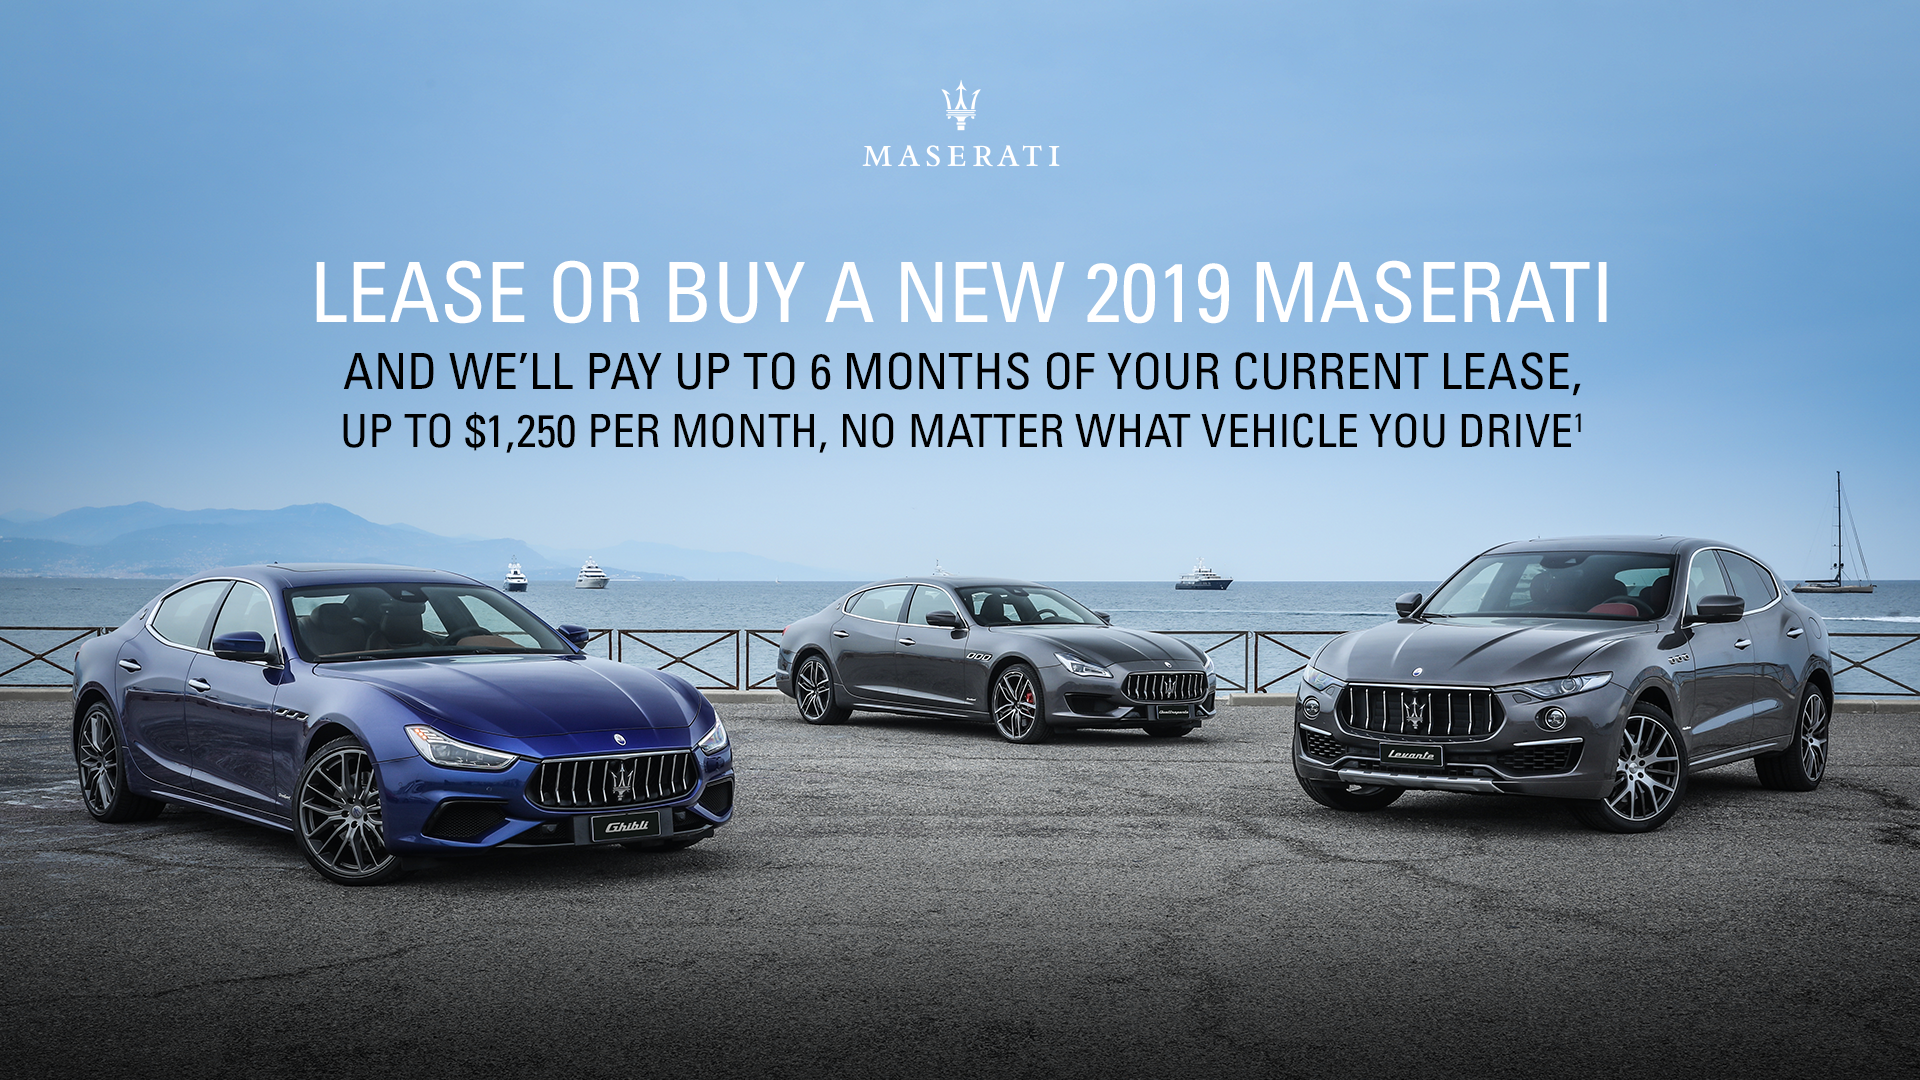 Lease or Buy a New 2019 Maserati